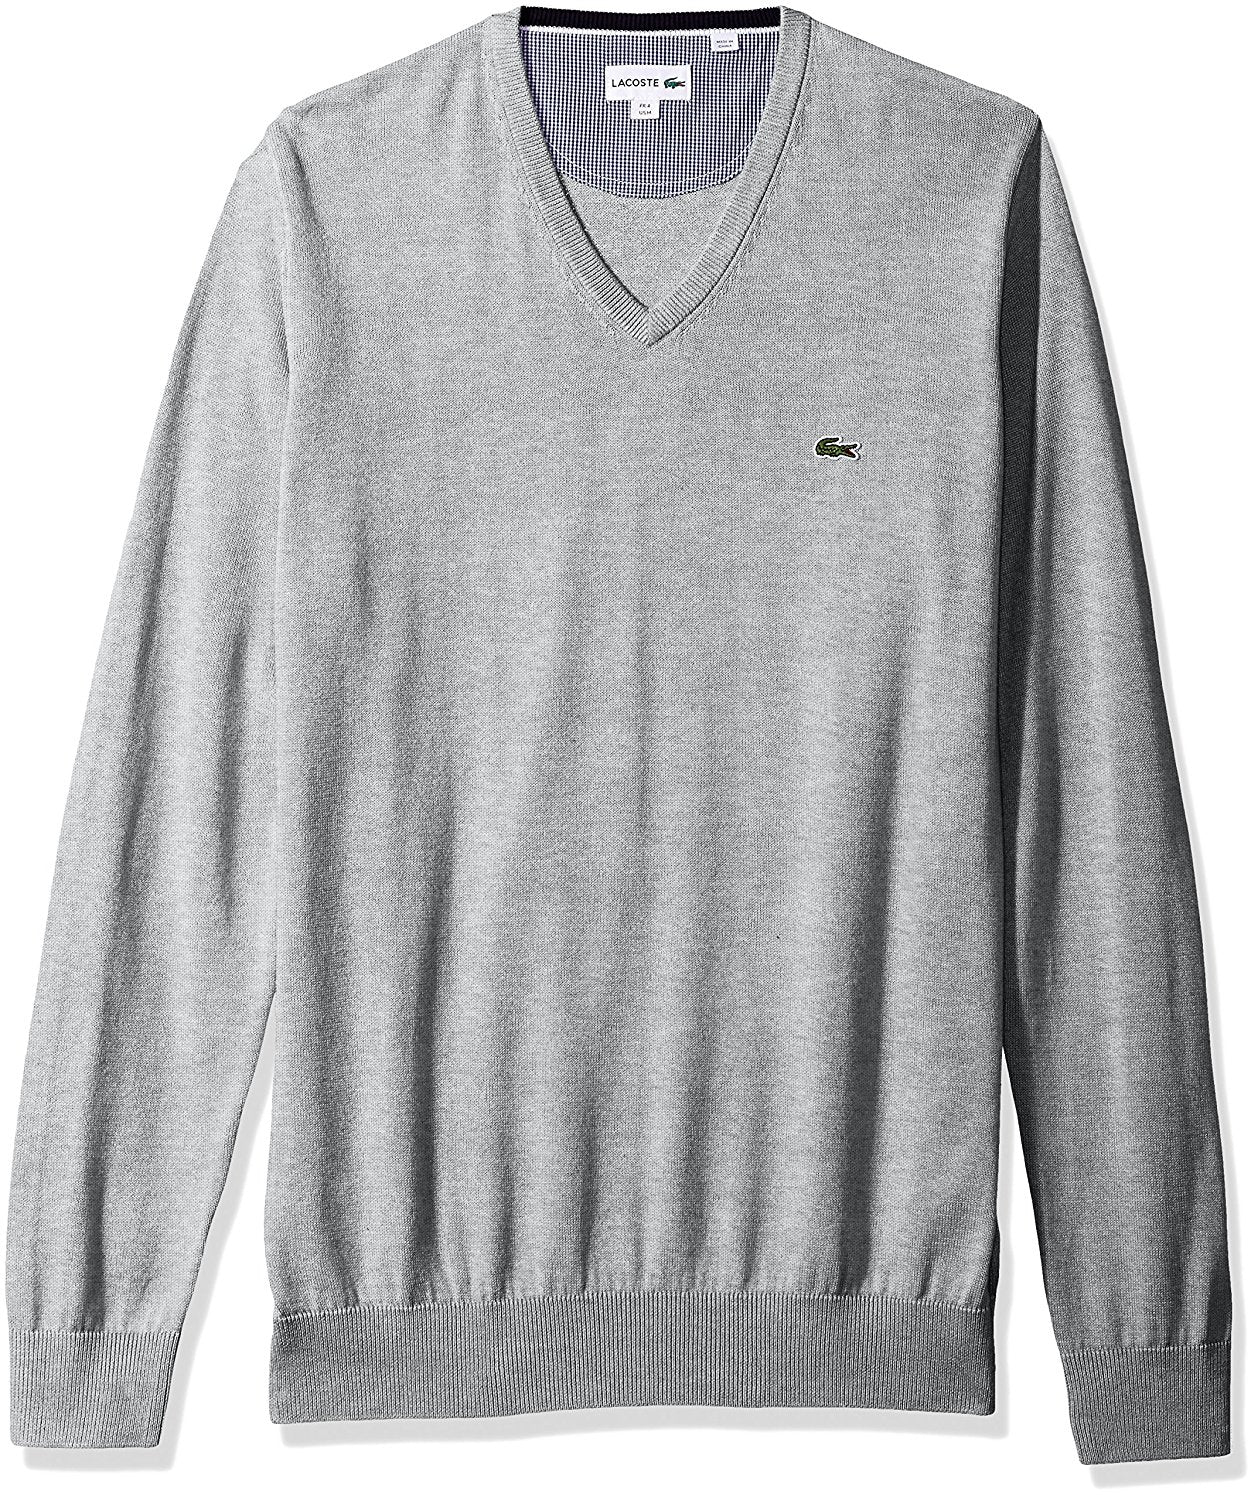 Men's V-Neck Cotton Jersey Sweater